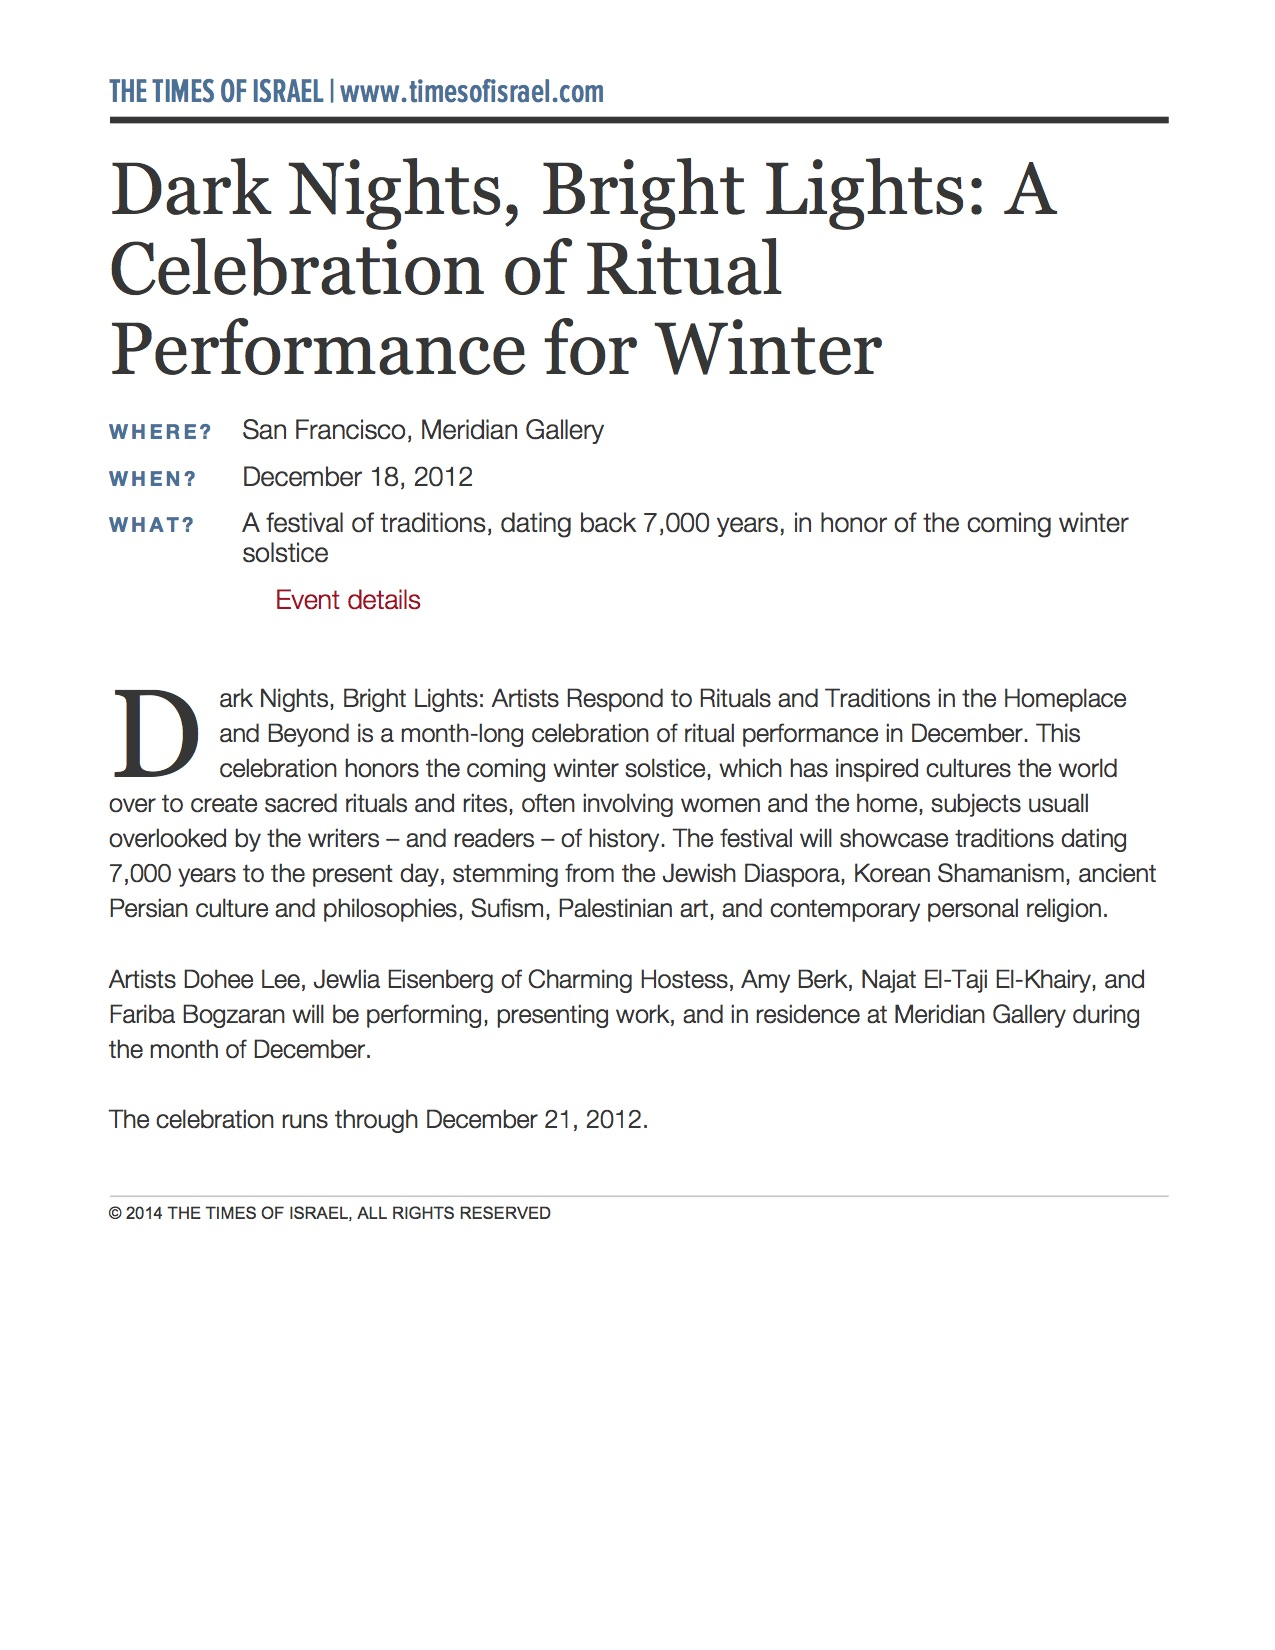 Dark Nights, Bright Lights_ A Celebration of Ritual Performance for Winter _ Events Calendar _ The Times of Israel.jpg